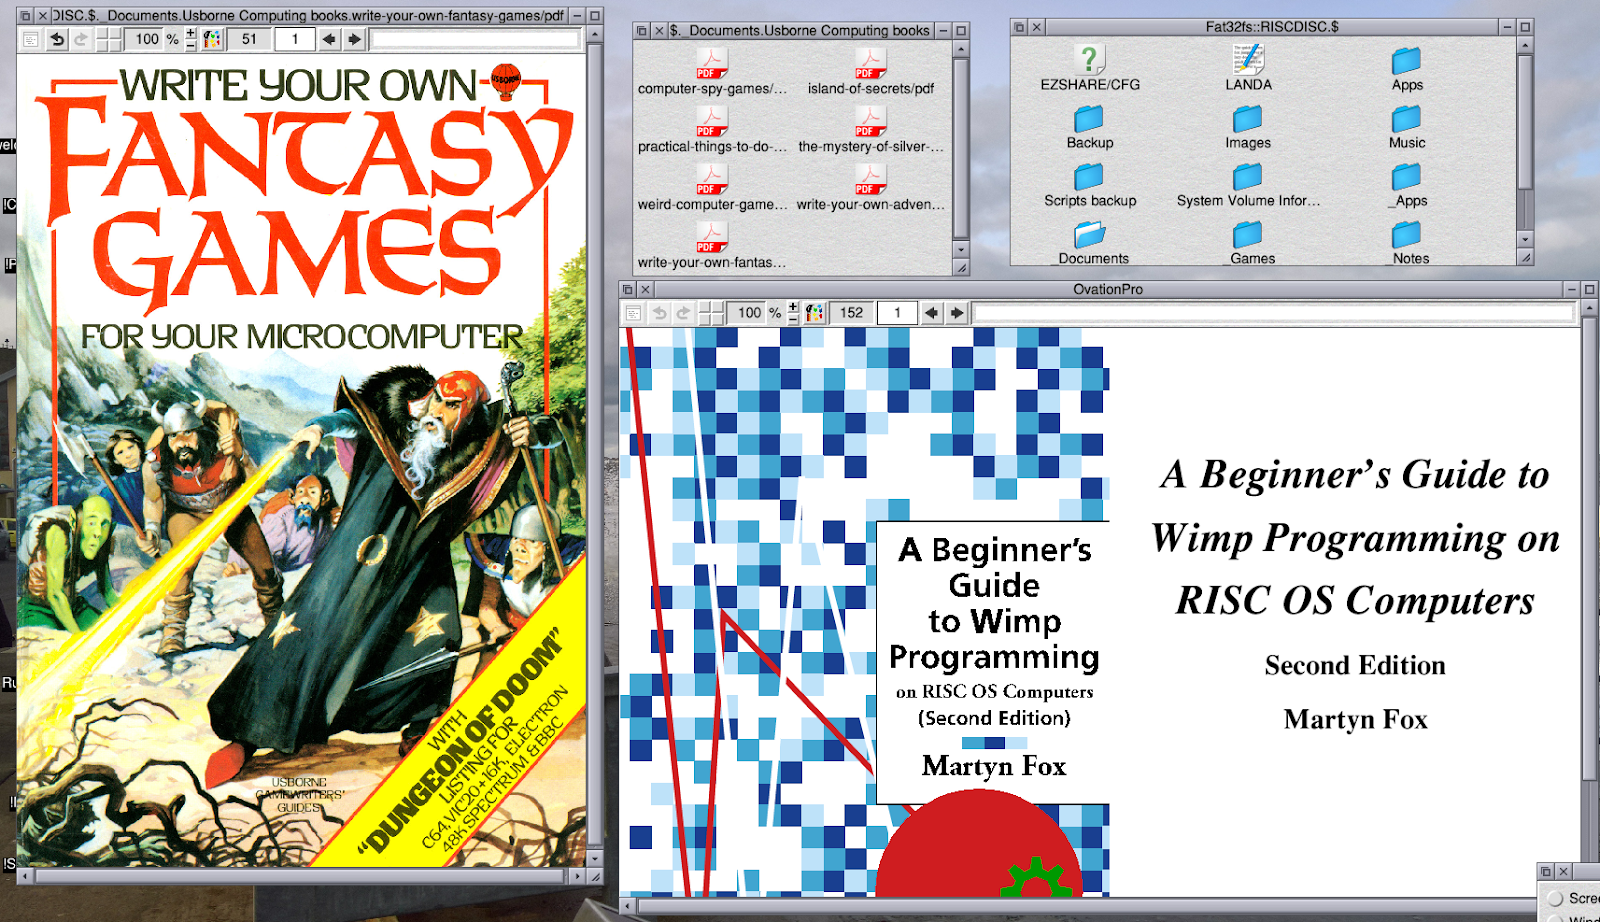 Can you use RISC OS as your main computer? - Superdecade Games